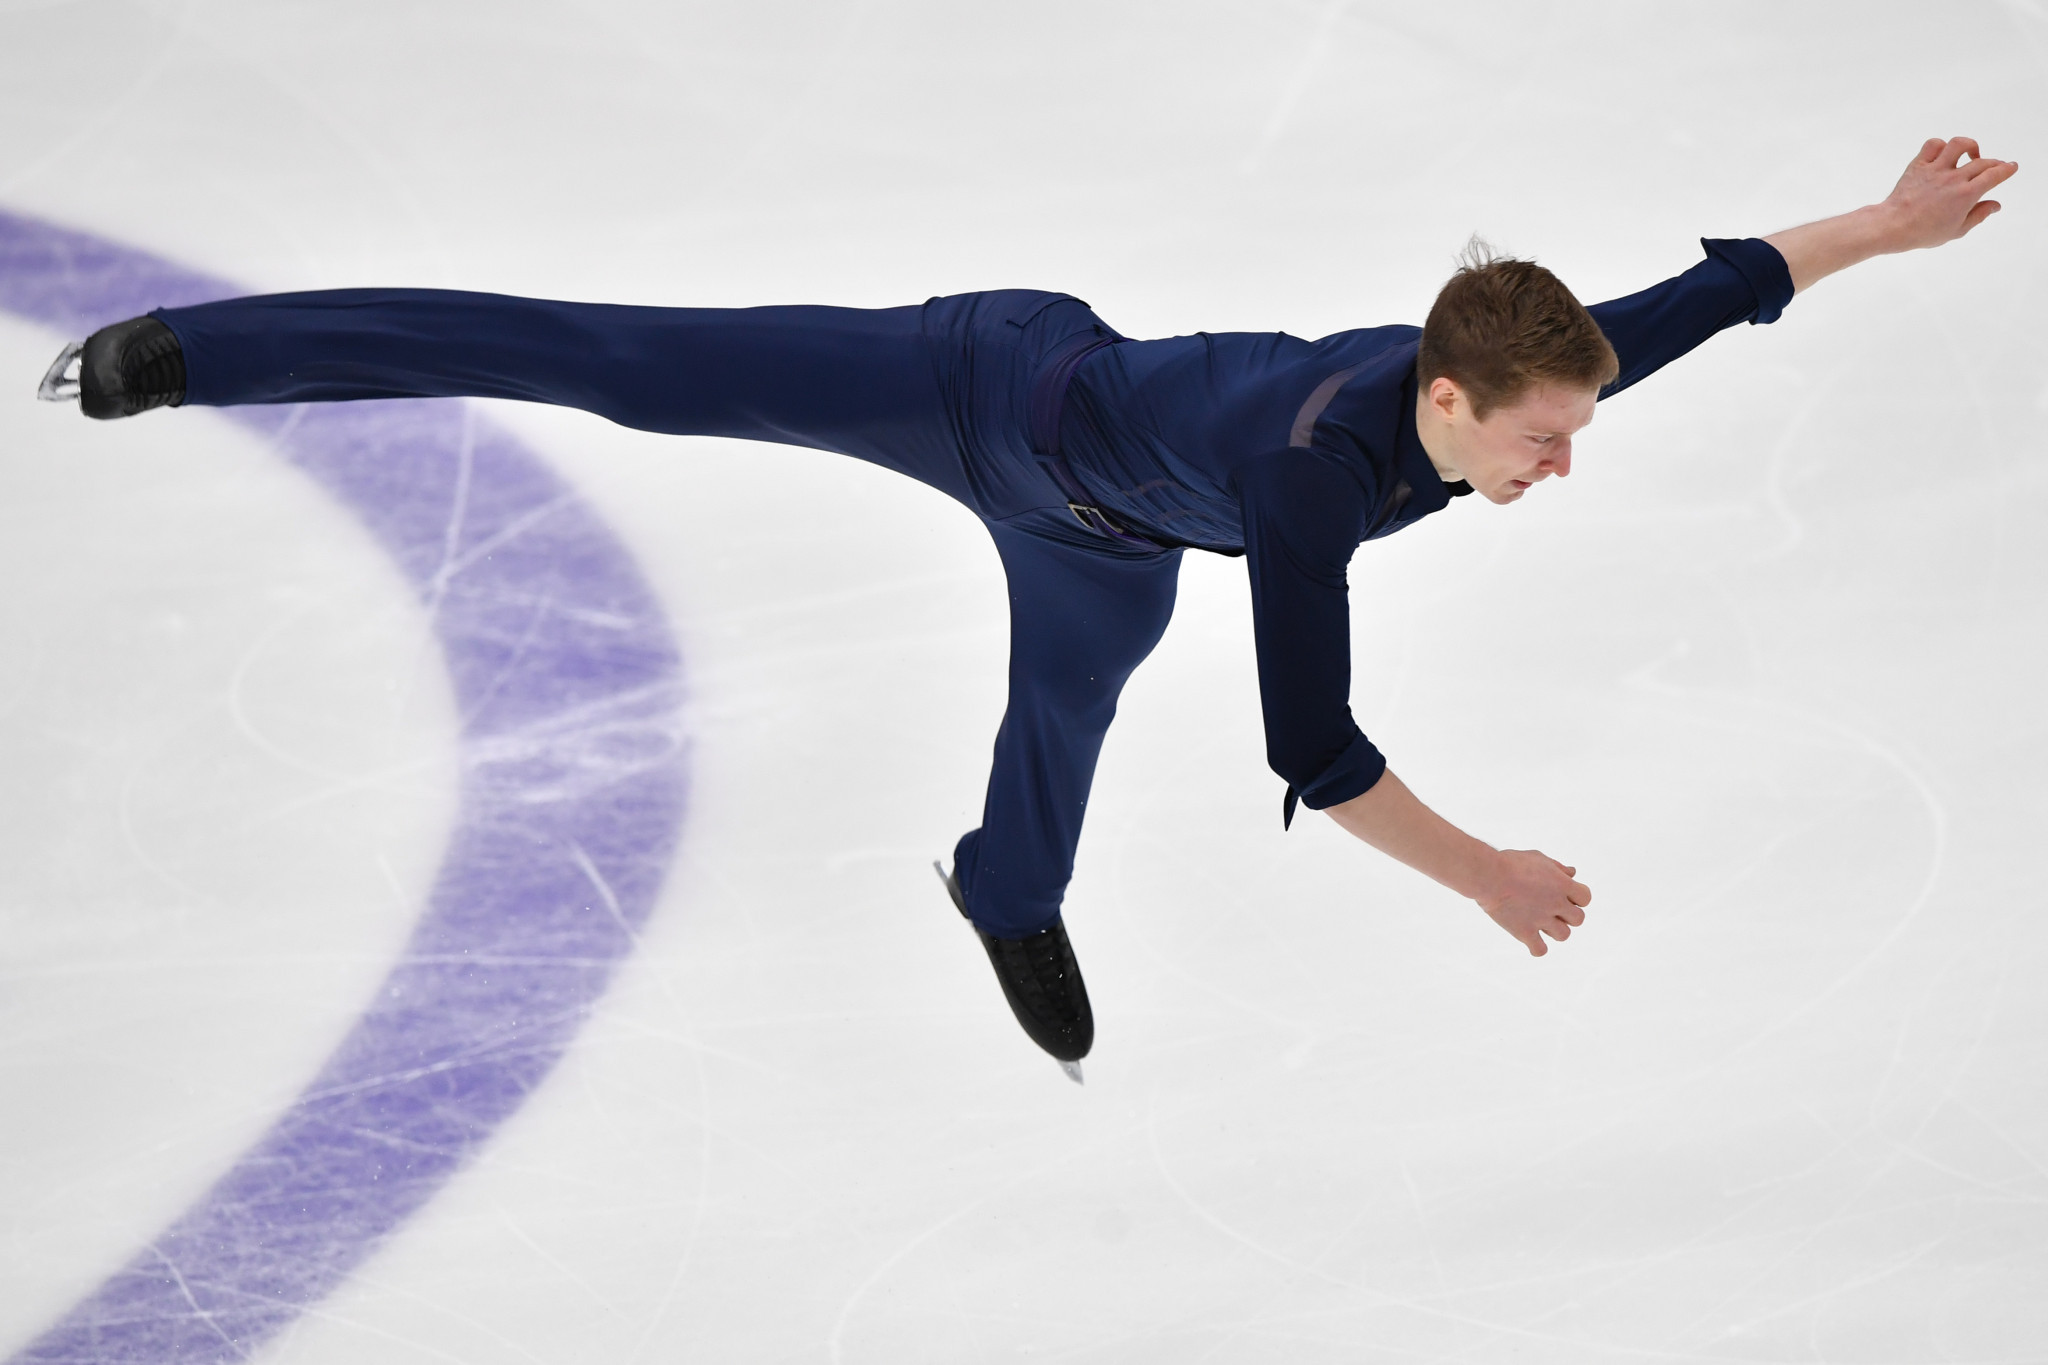 Samarin leads as Russians dominate men's competition at Rostelecom Cup